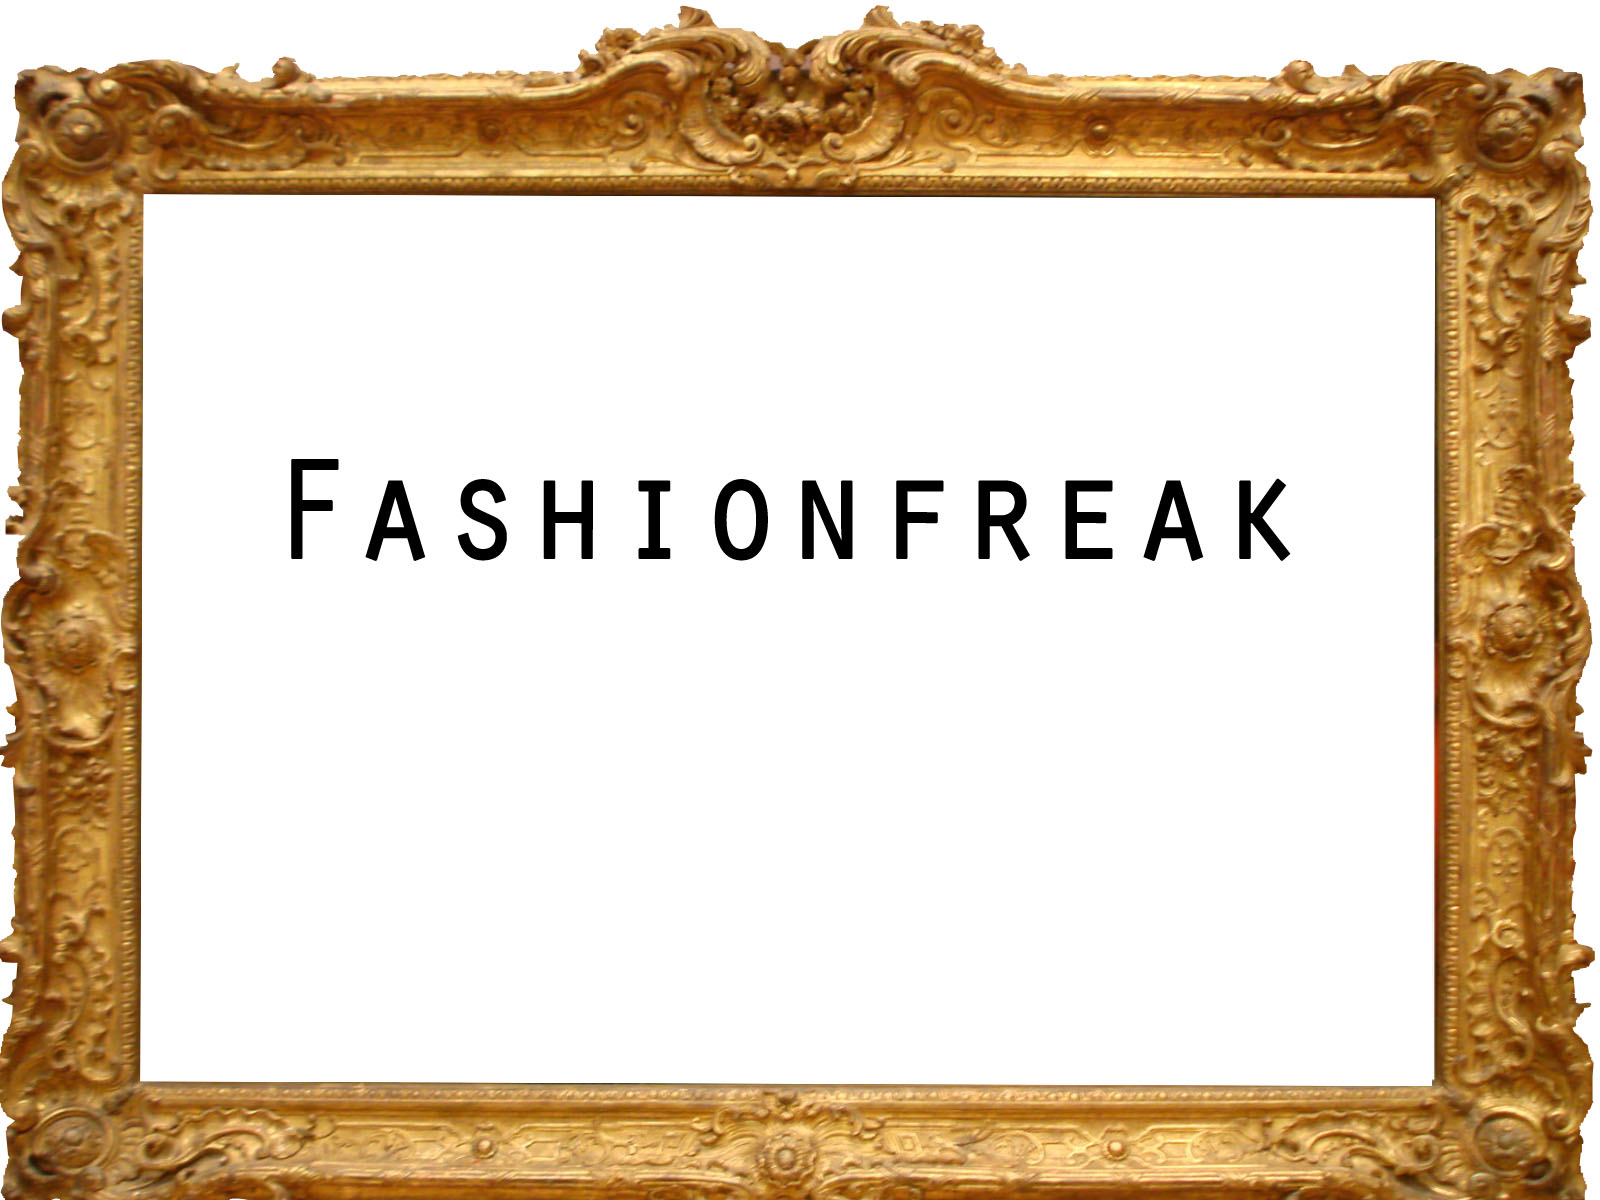 Fashionfreak